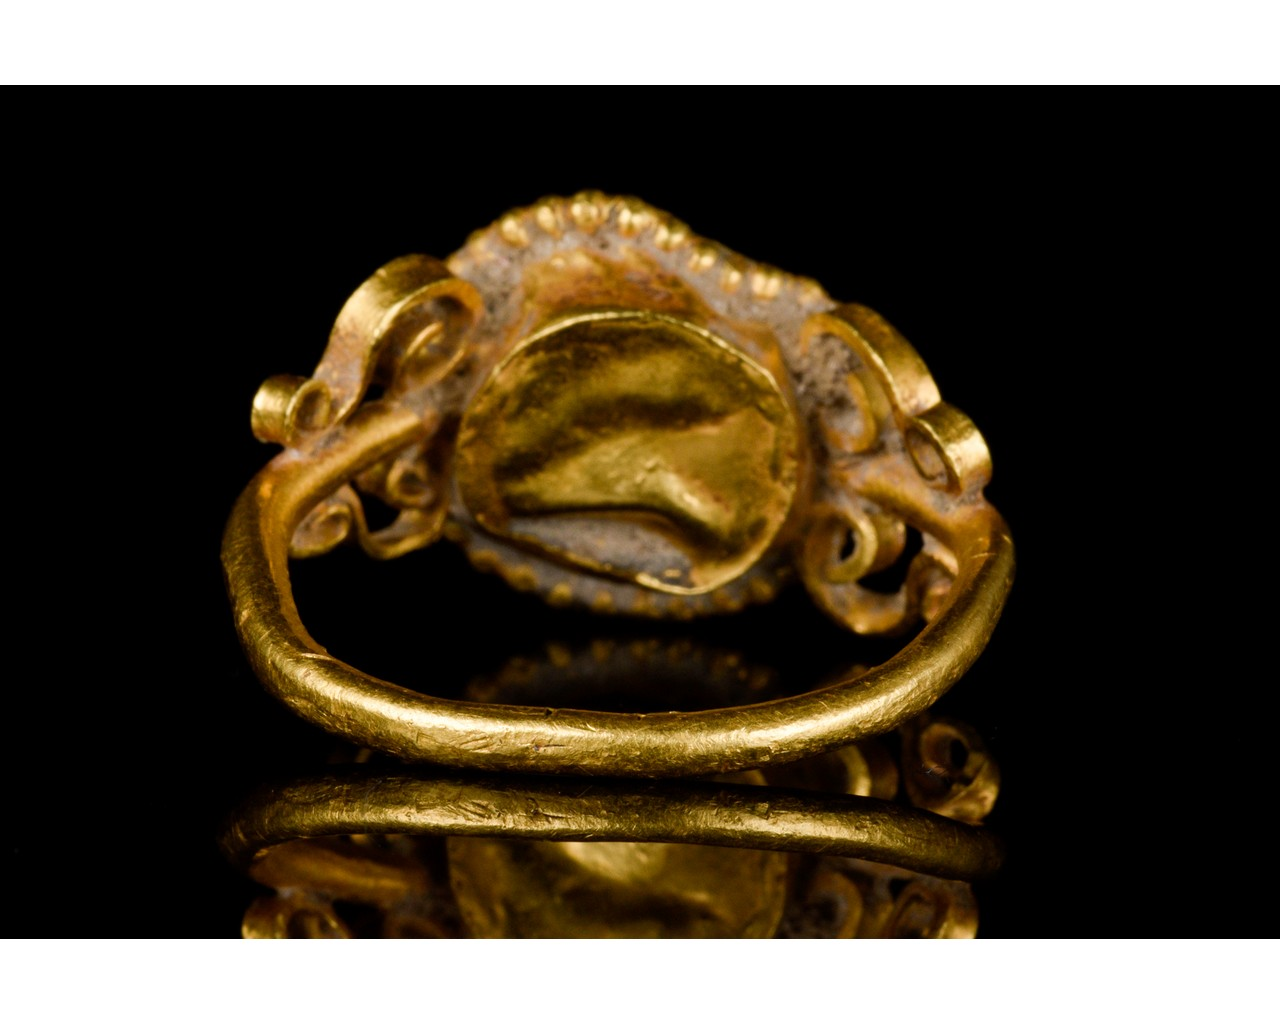 LATE ROMAN GOLD AND GLASS RING - EX CHRISTIE'S - FULL ANALYSIS - Image 4 of 8